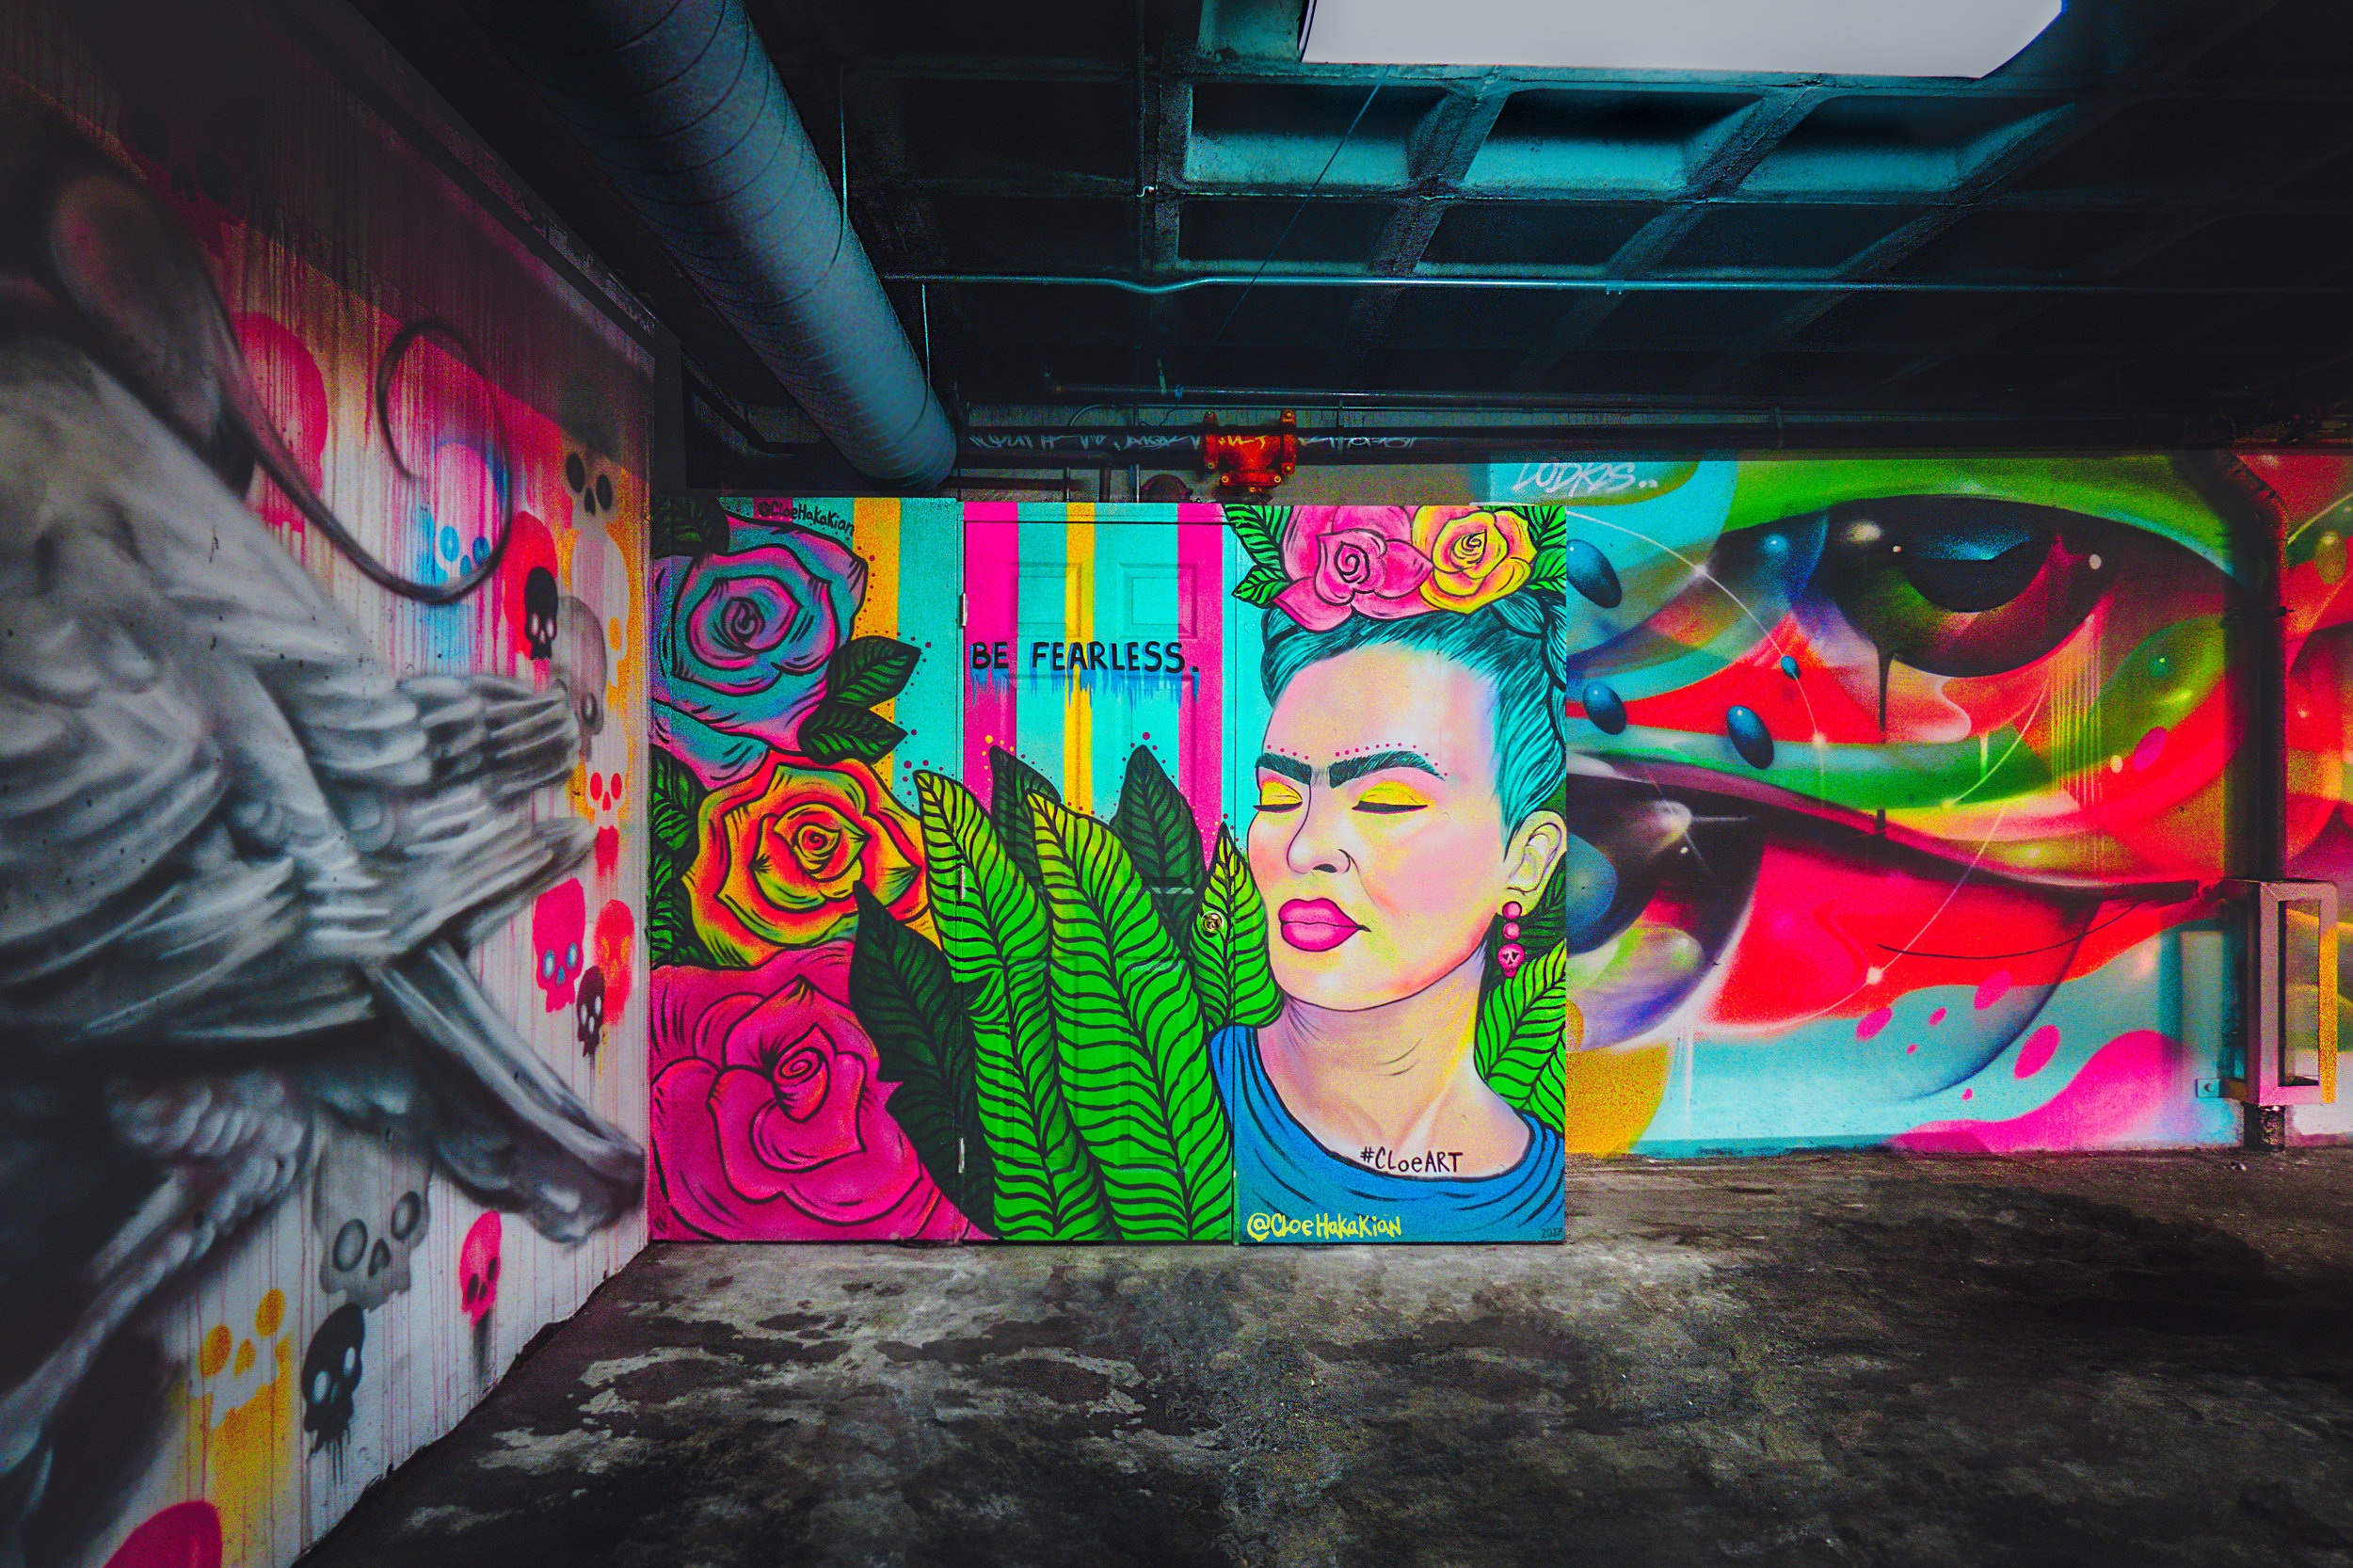 Colorful artwork on a wall